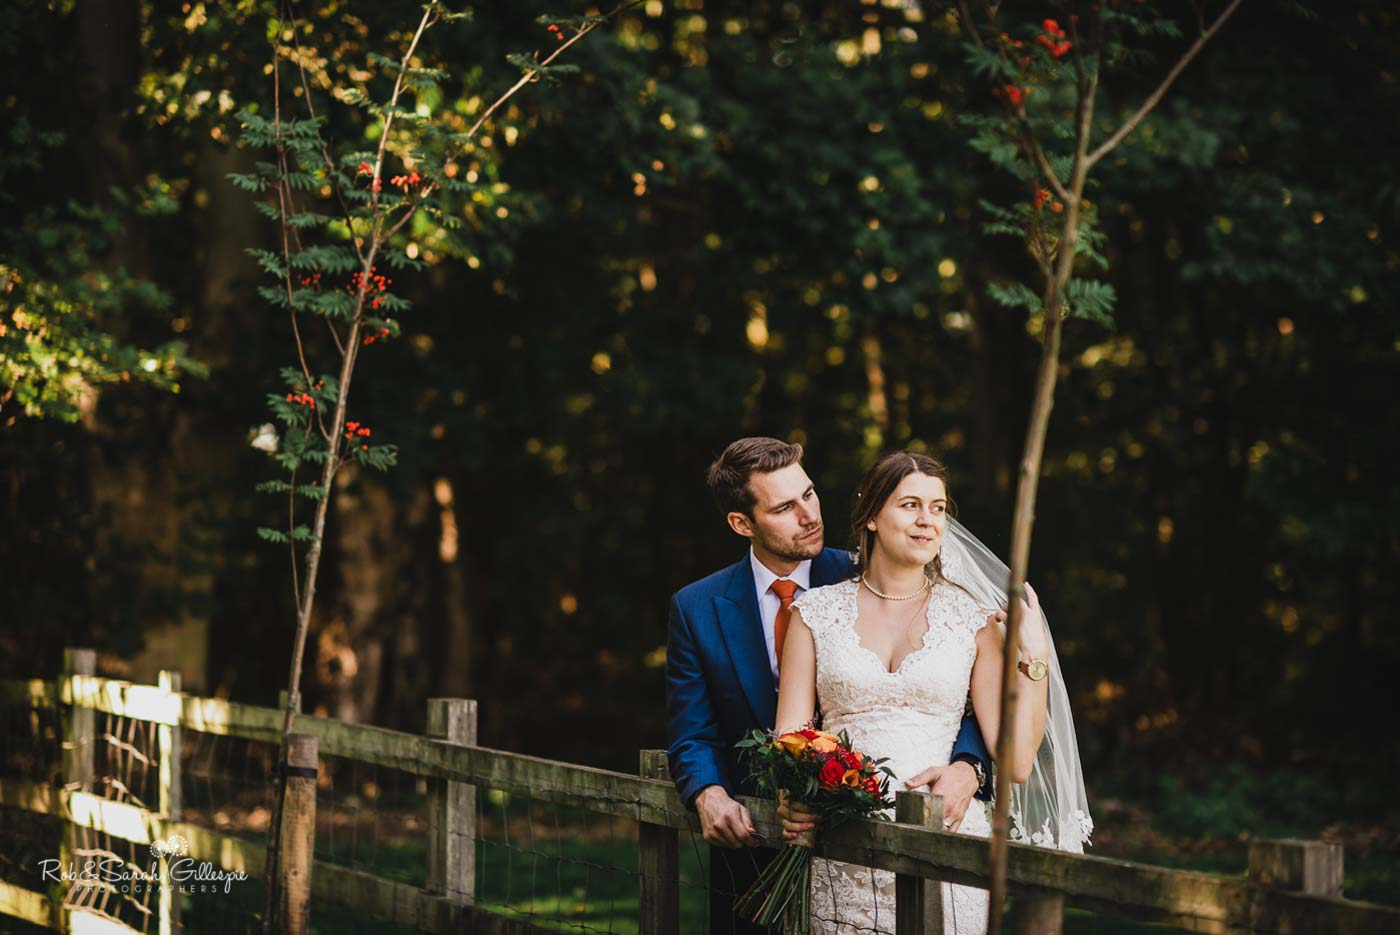 Hazel Gap Barn relaxed wedding photos